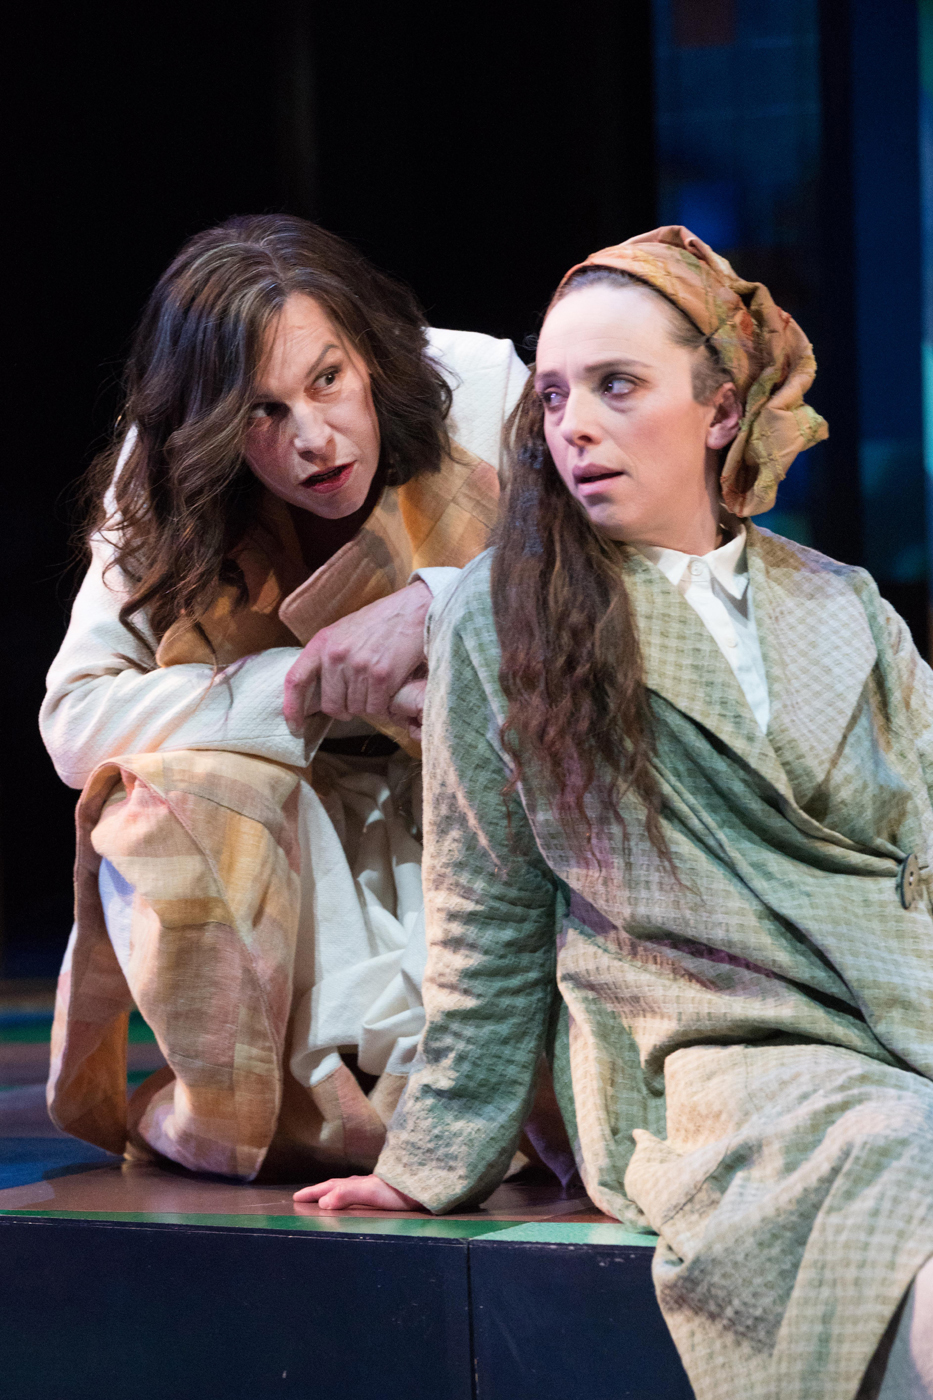 Rachel Crowl as Duke Senior and Erica Sullivan as Jaques, As You Like It, Oregon Shakespeare Festival